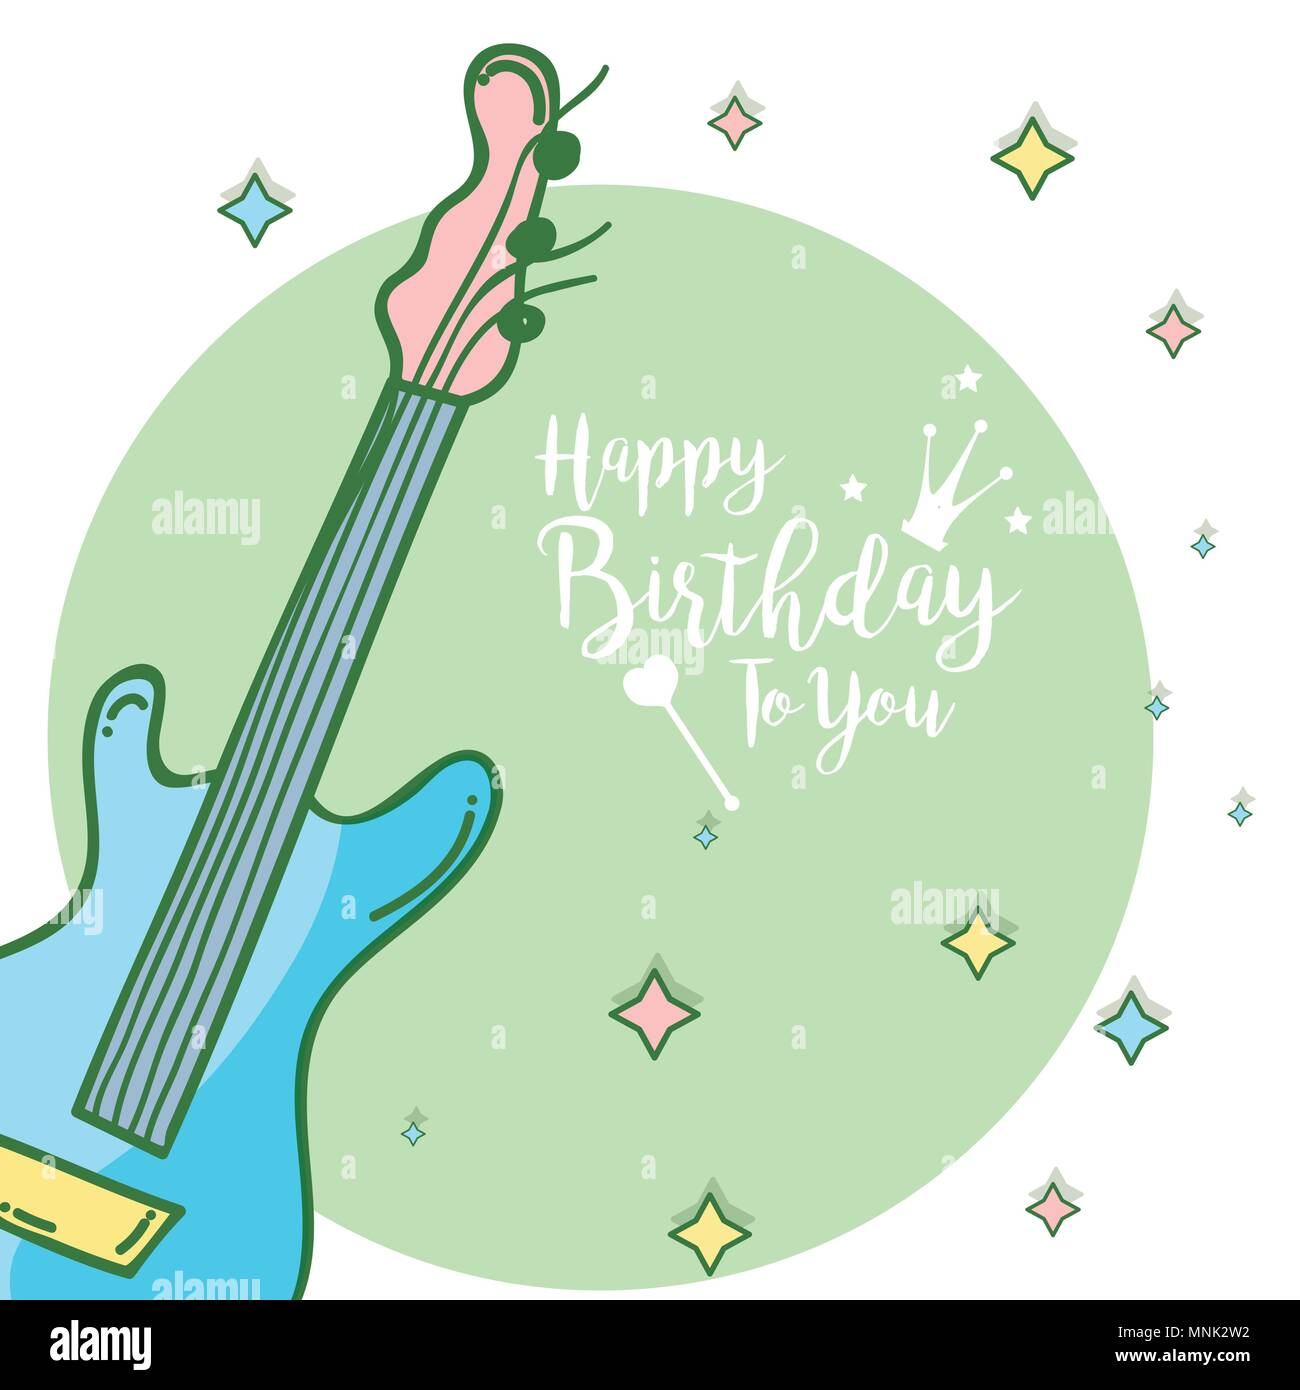 Happy Birthday Card Stock Vector Art Illustration Image